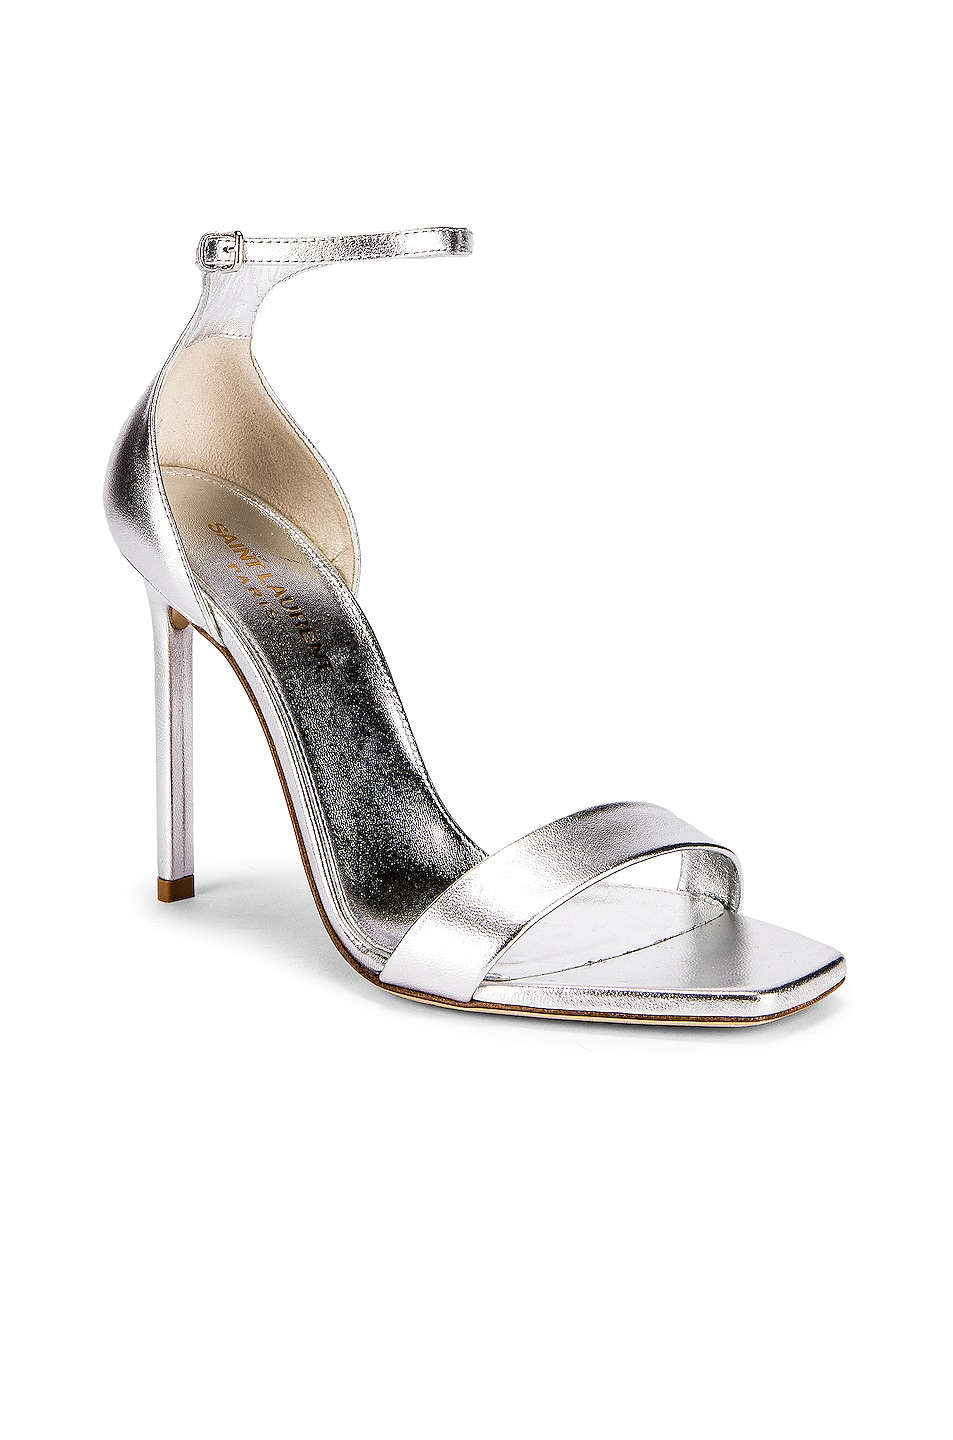 Image 2 of Saint Laurent Amber Ankle Strap Heels in Silver